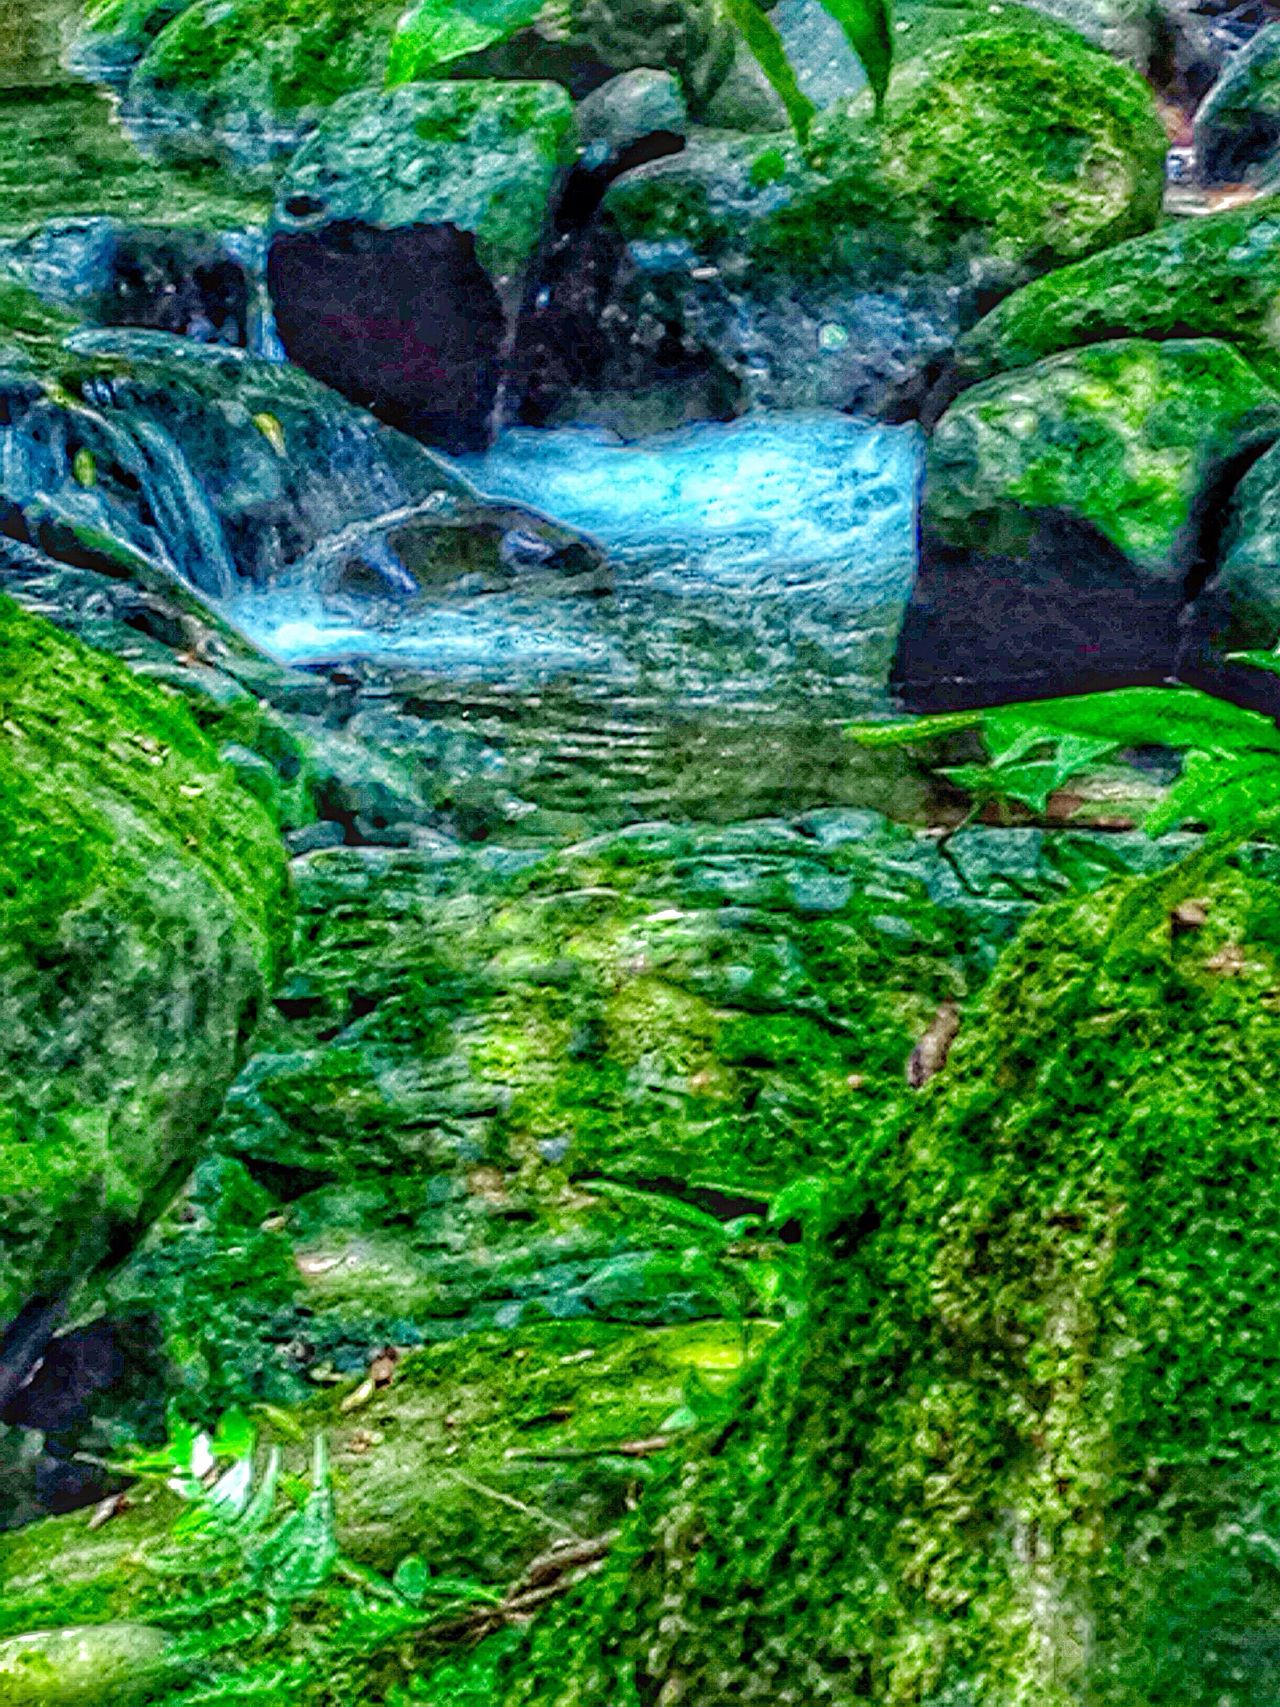 Natural Beauty Nature Photography A Picture Like This ❤ Stream Flowing Motion Blur Waterfall Power In Nature For I Grew Up The Mountains Japan Photography In Nagasaki, Perfecture